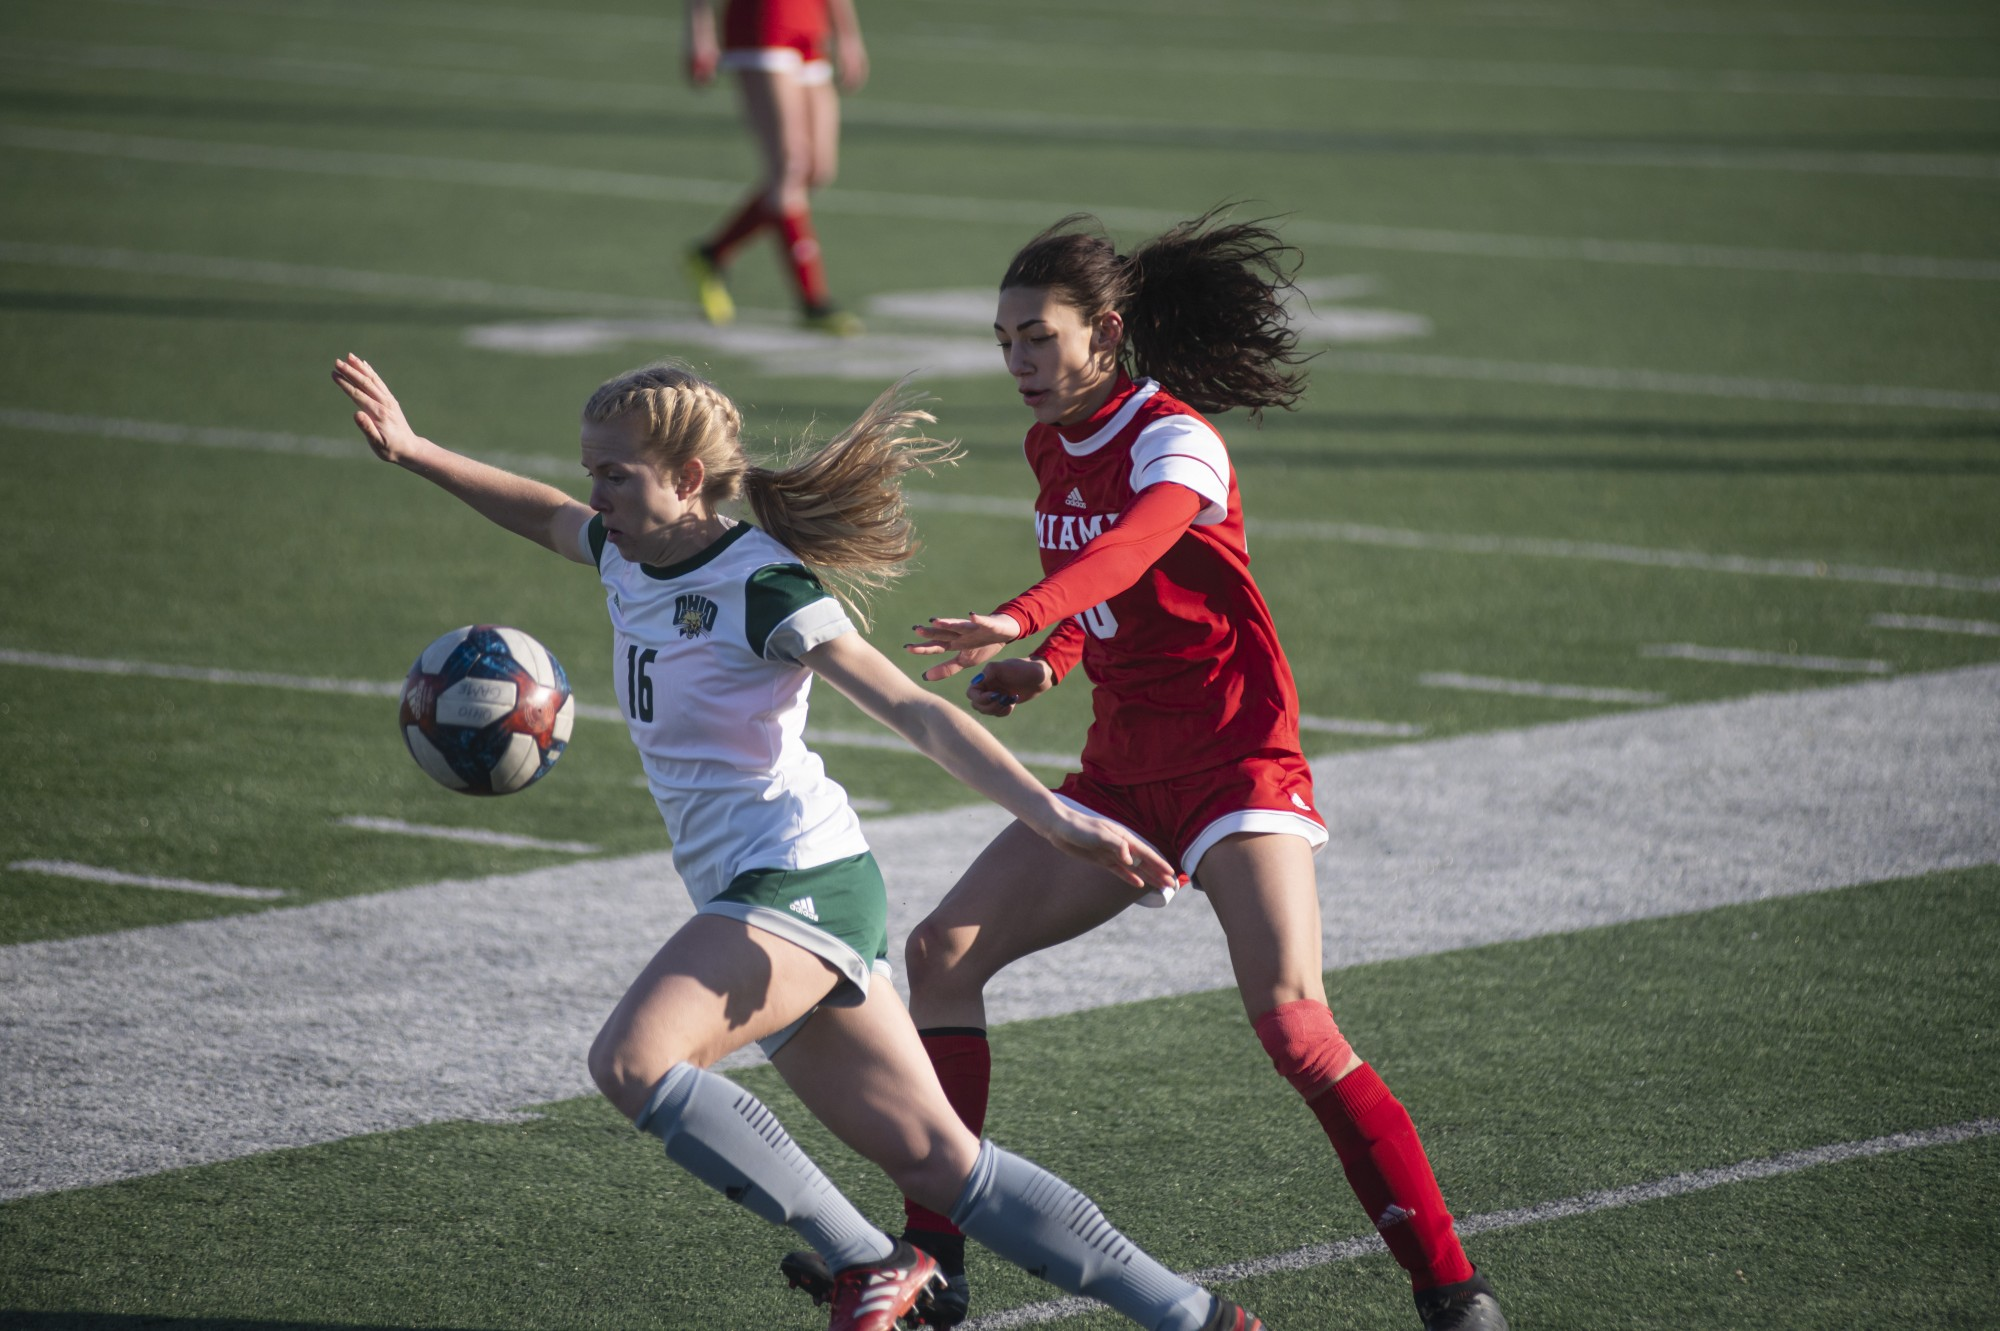 Abby Townsend (#16) guards the ball from a rival Miami player during the home game held at Peden Stadium in Athens, Ohio, on March 4, 2021. The Bobcats lost to the Redhawks 0-1.